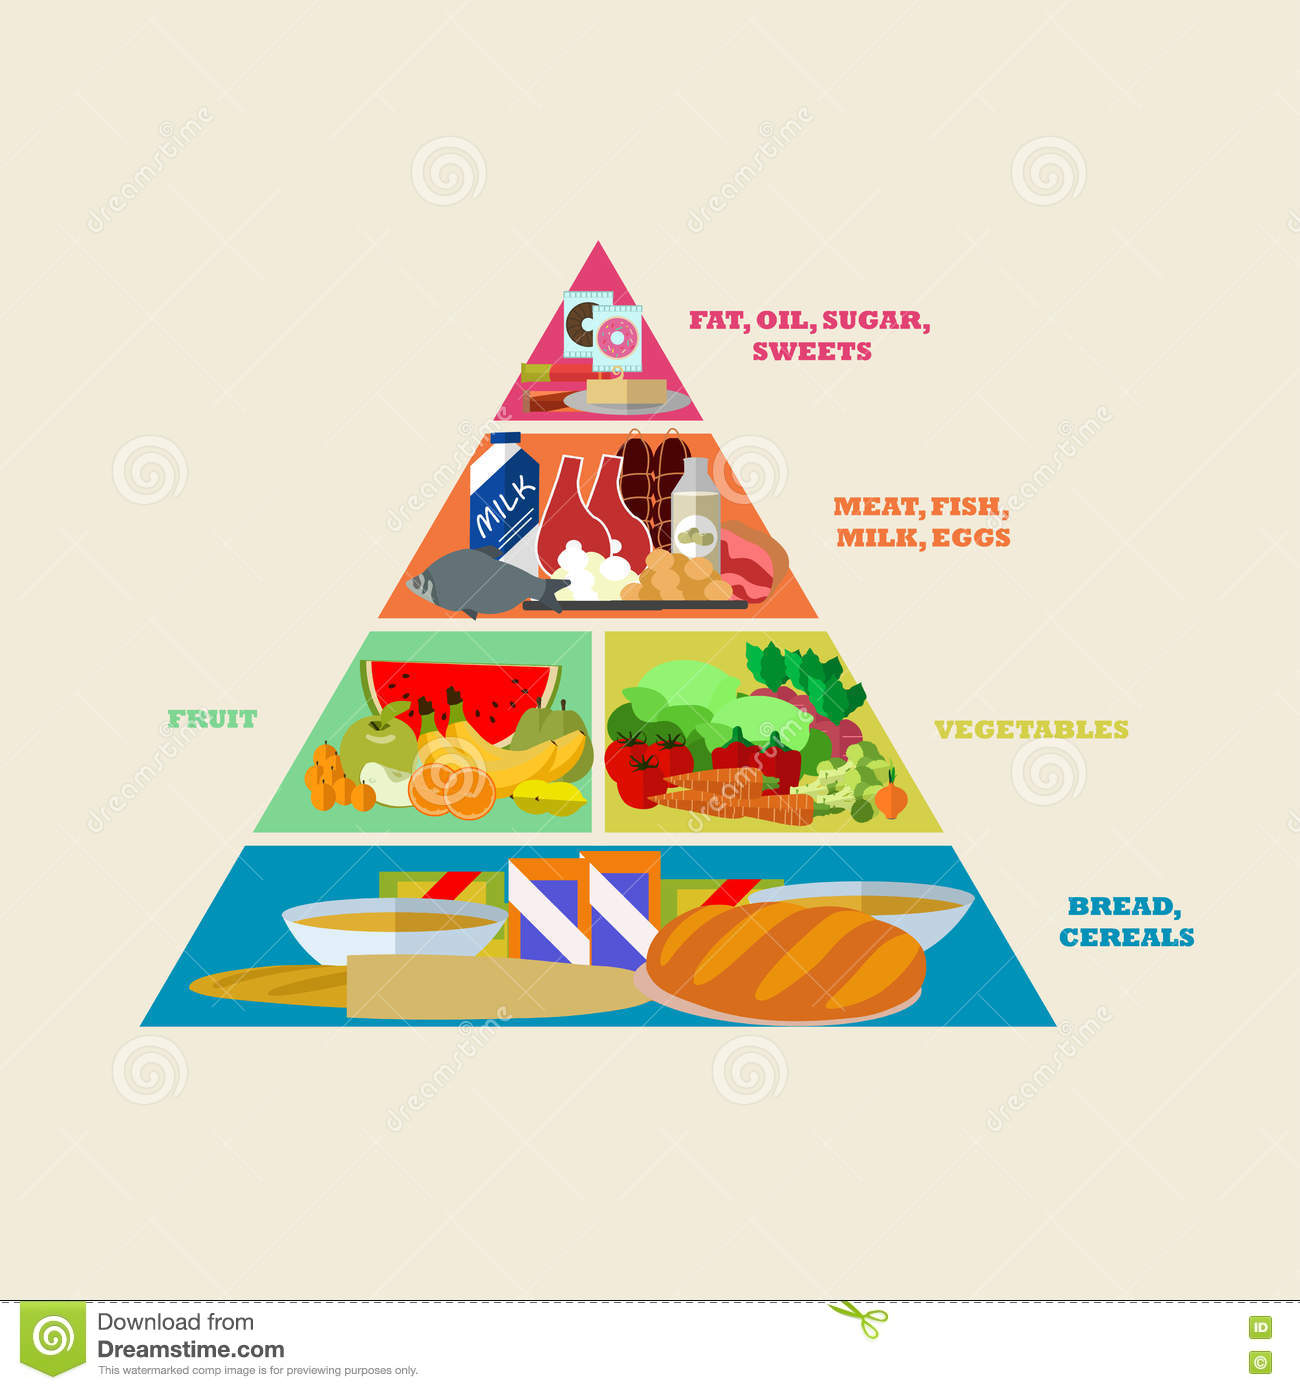 Healthy food pyramid vector poster in flat style design. Different groups of products